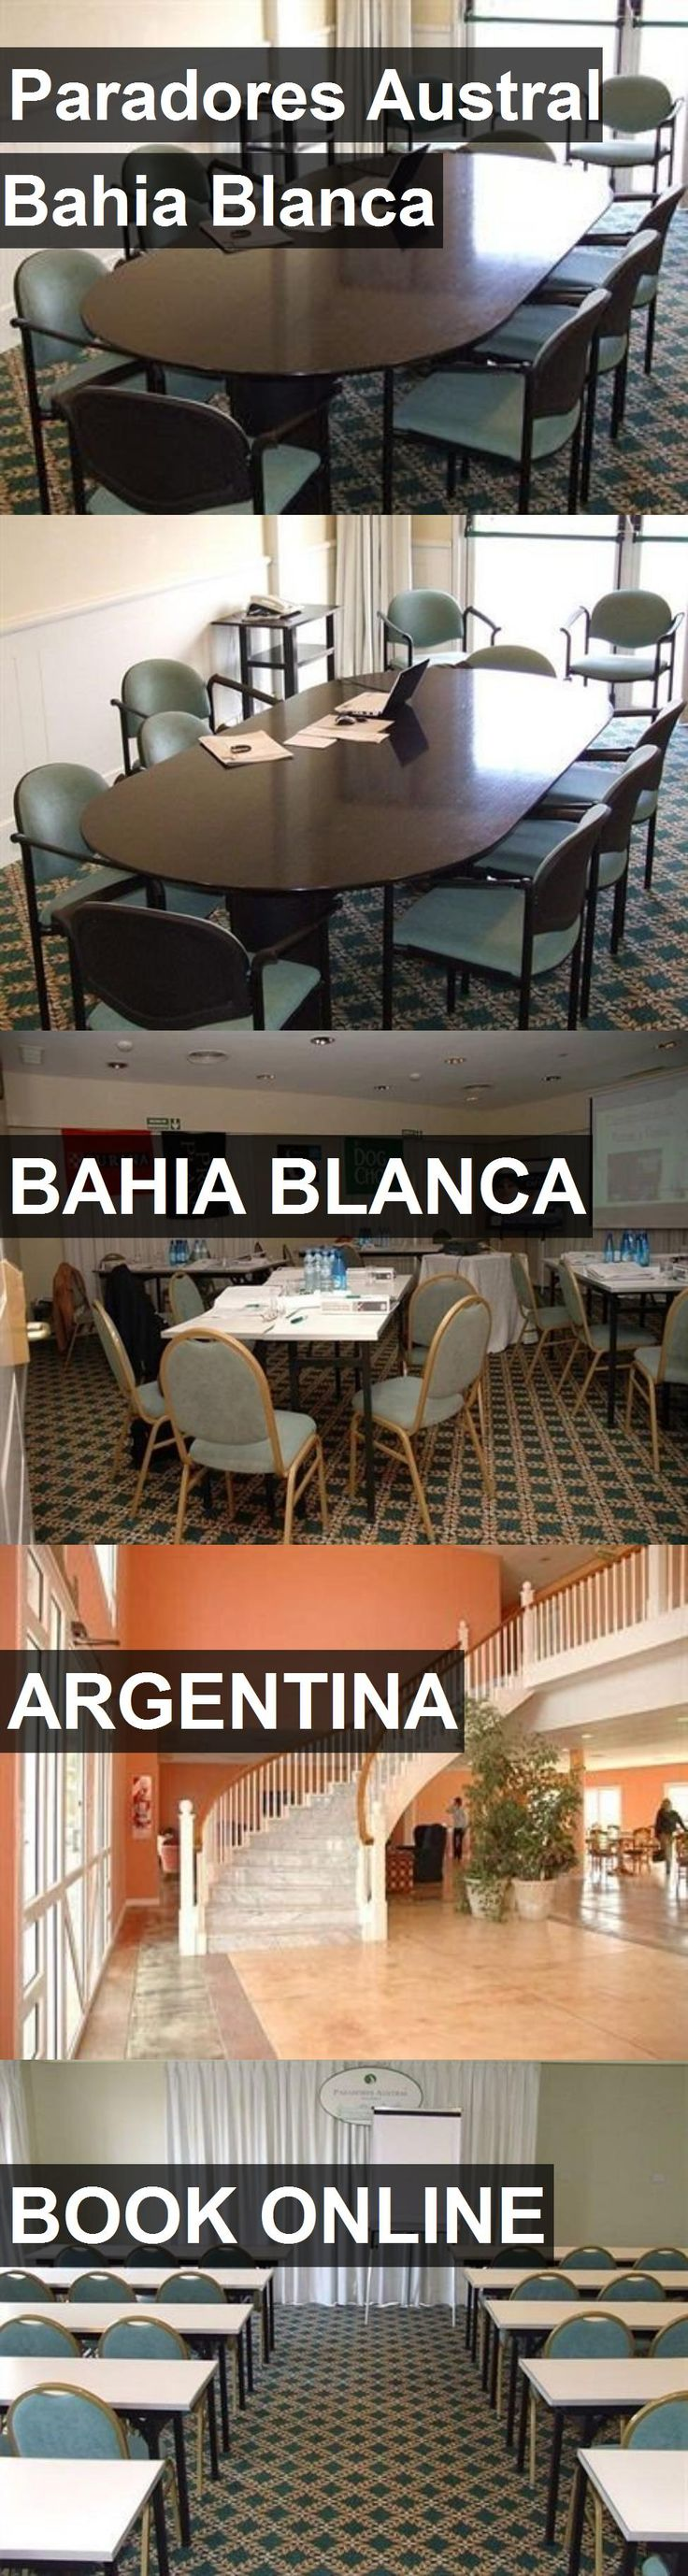 Hotel Paradores Austral Bahia Blanca in Bahia Blanca, Argentina. For more information, photos, reviews and best prices please follow the link. #Argentina #BahiaBlanca #hotel #travel #vacation